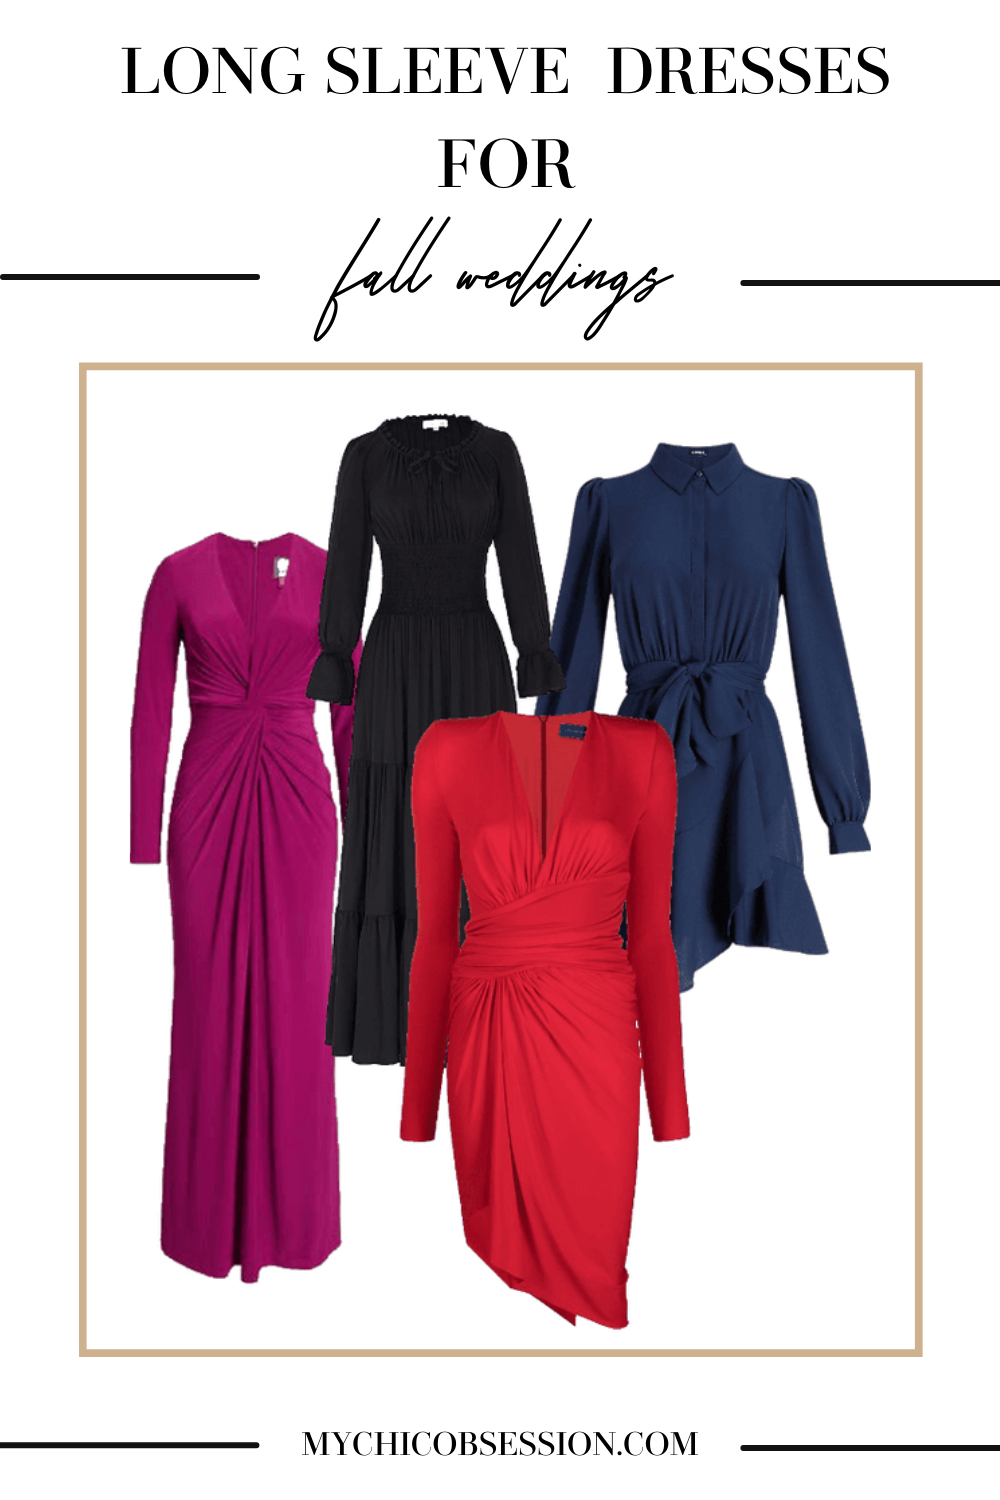 purple, red and blue long sleeve dresses for fall weddings